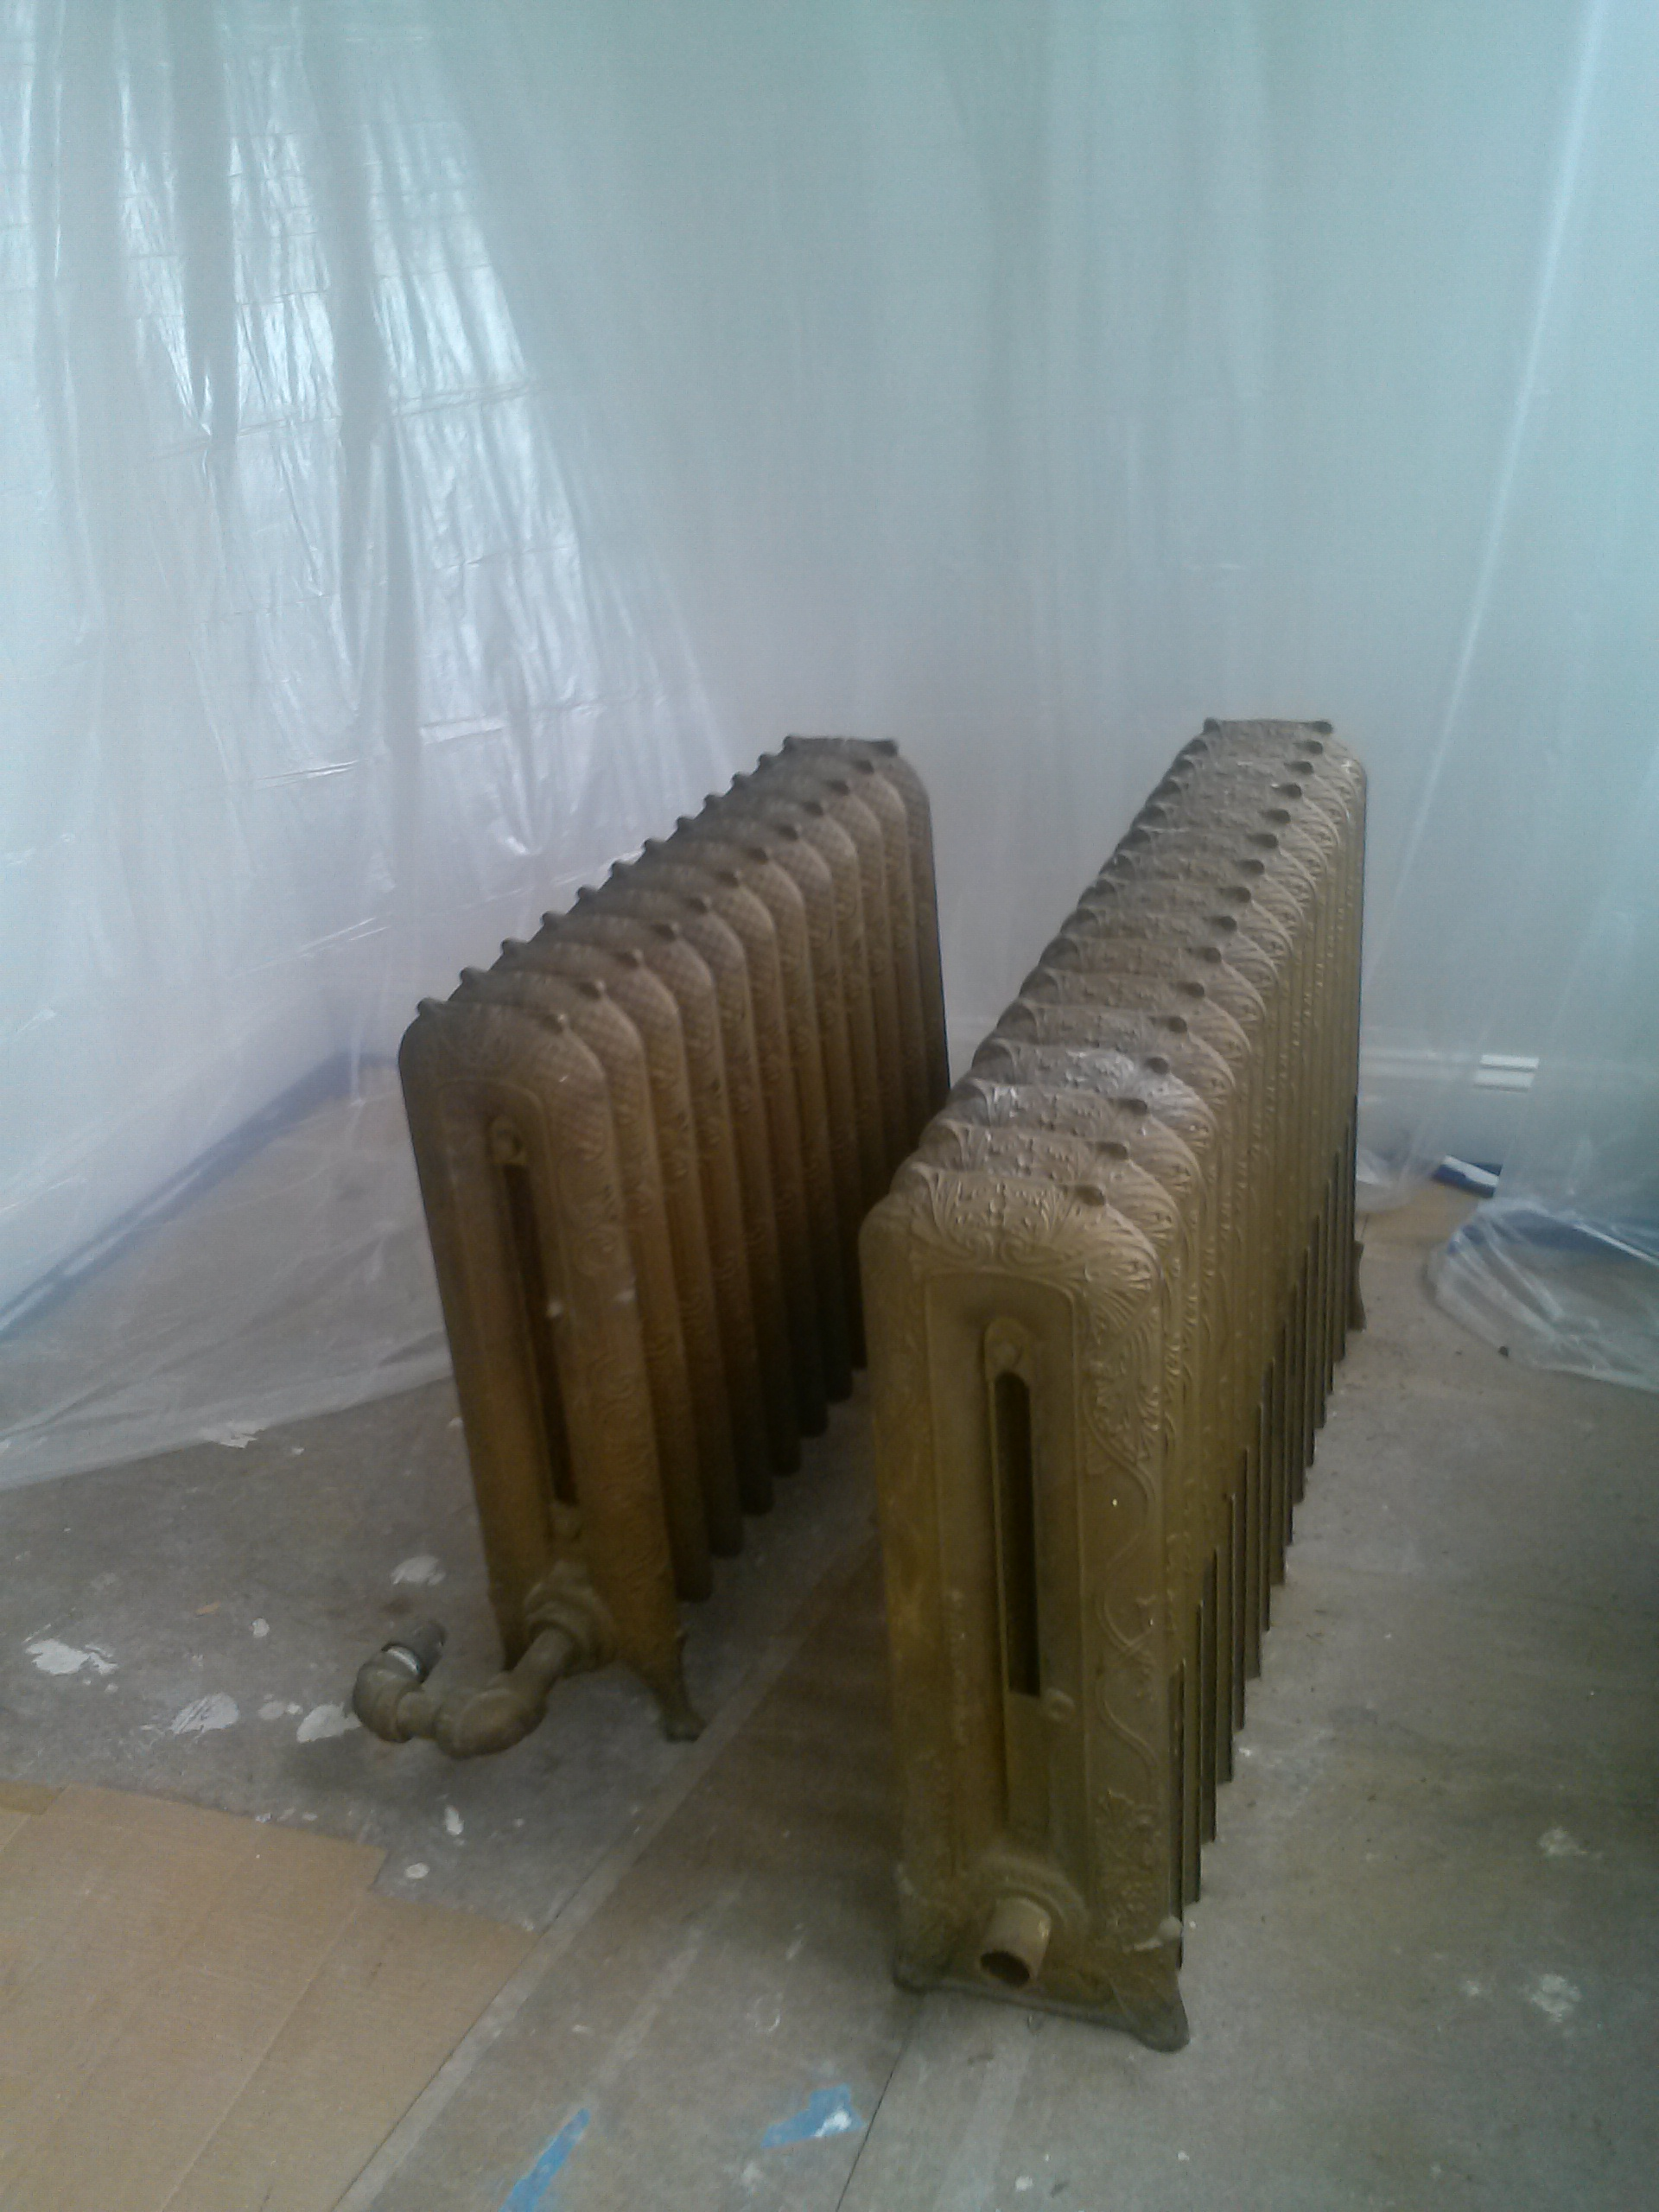 Refurbishing Antique Radiators 7 Steps With Pictures Instructables